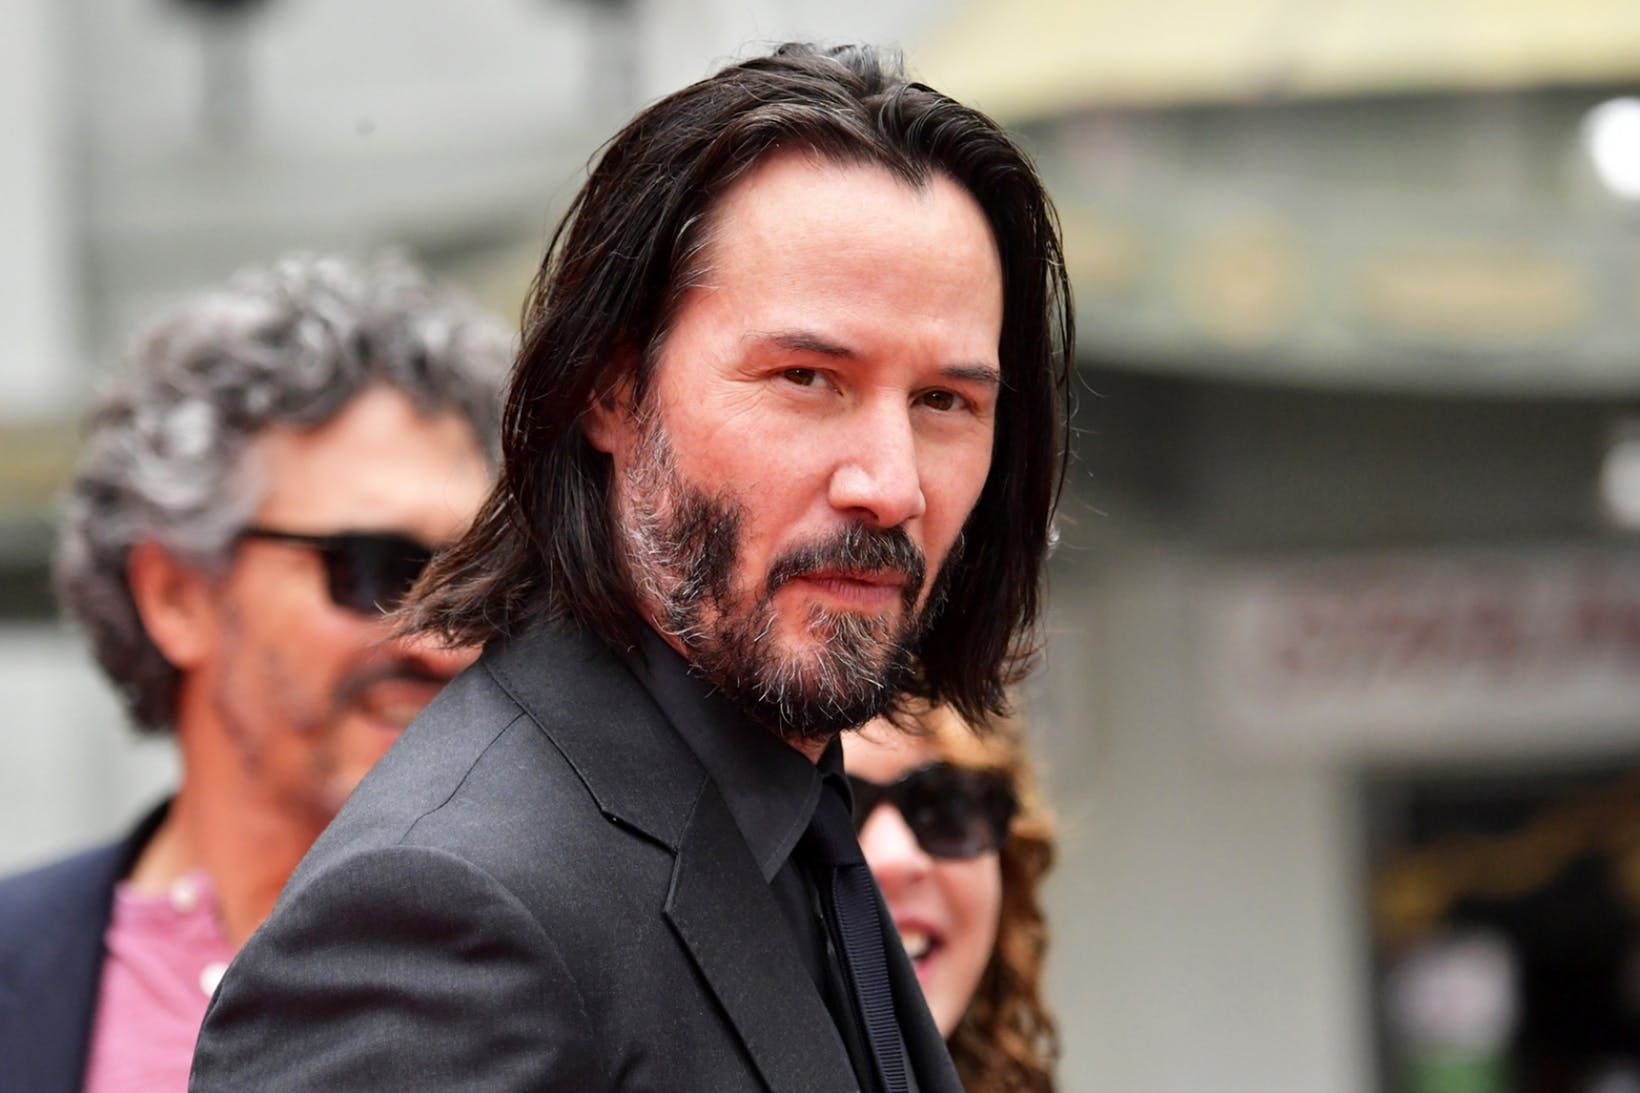 Keanu Reeves just showed us why it's important that men ...